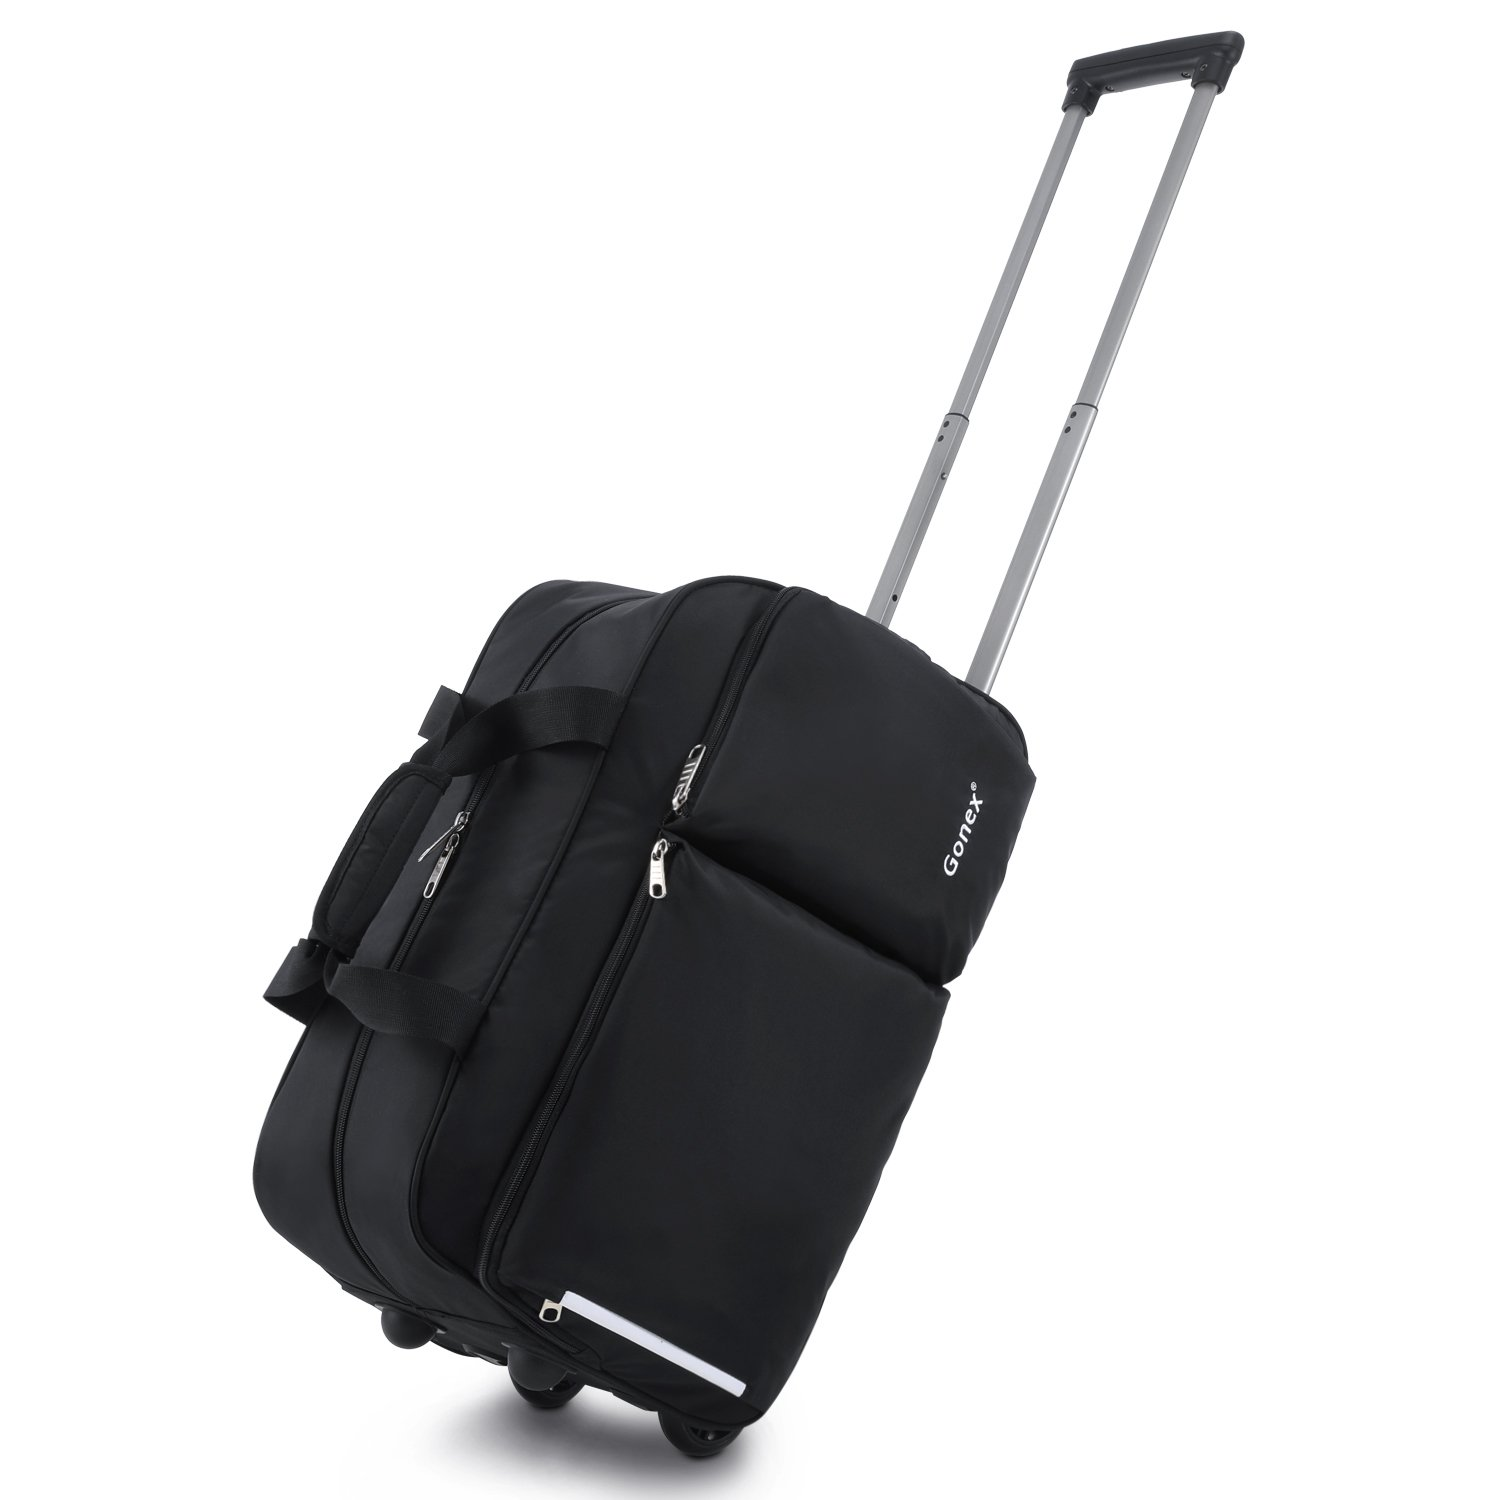 The Rolling Duffel Bag travel product recommended by Ollie Smith on Lifney.